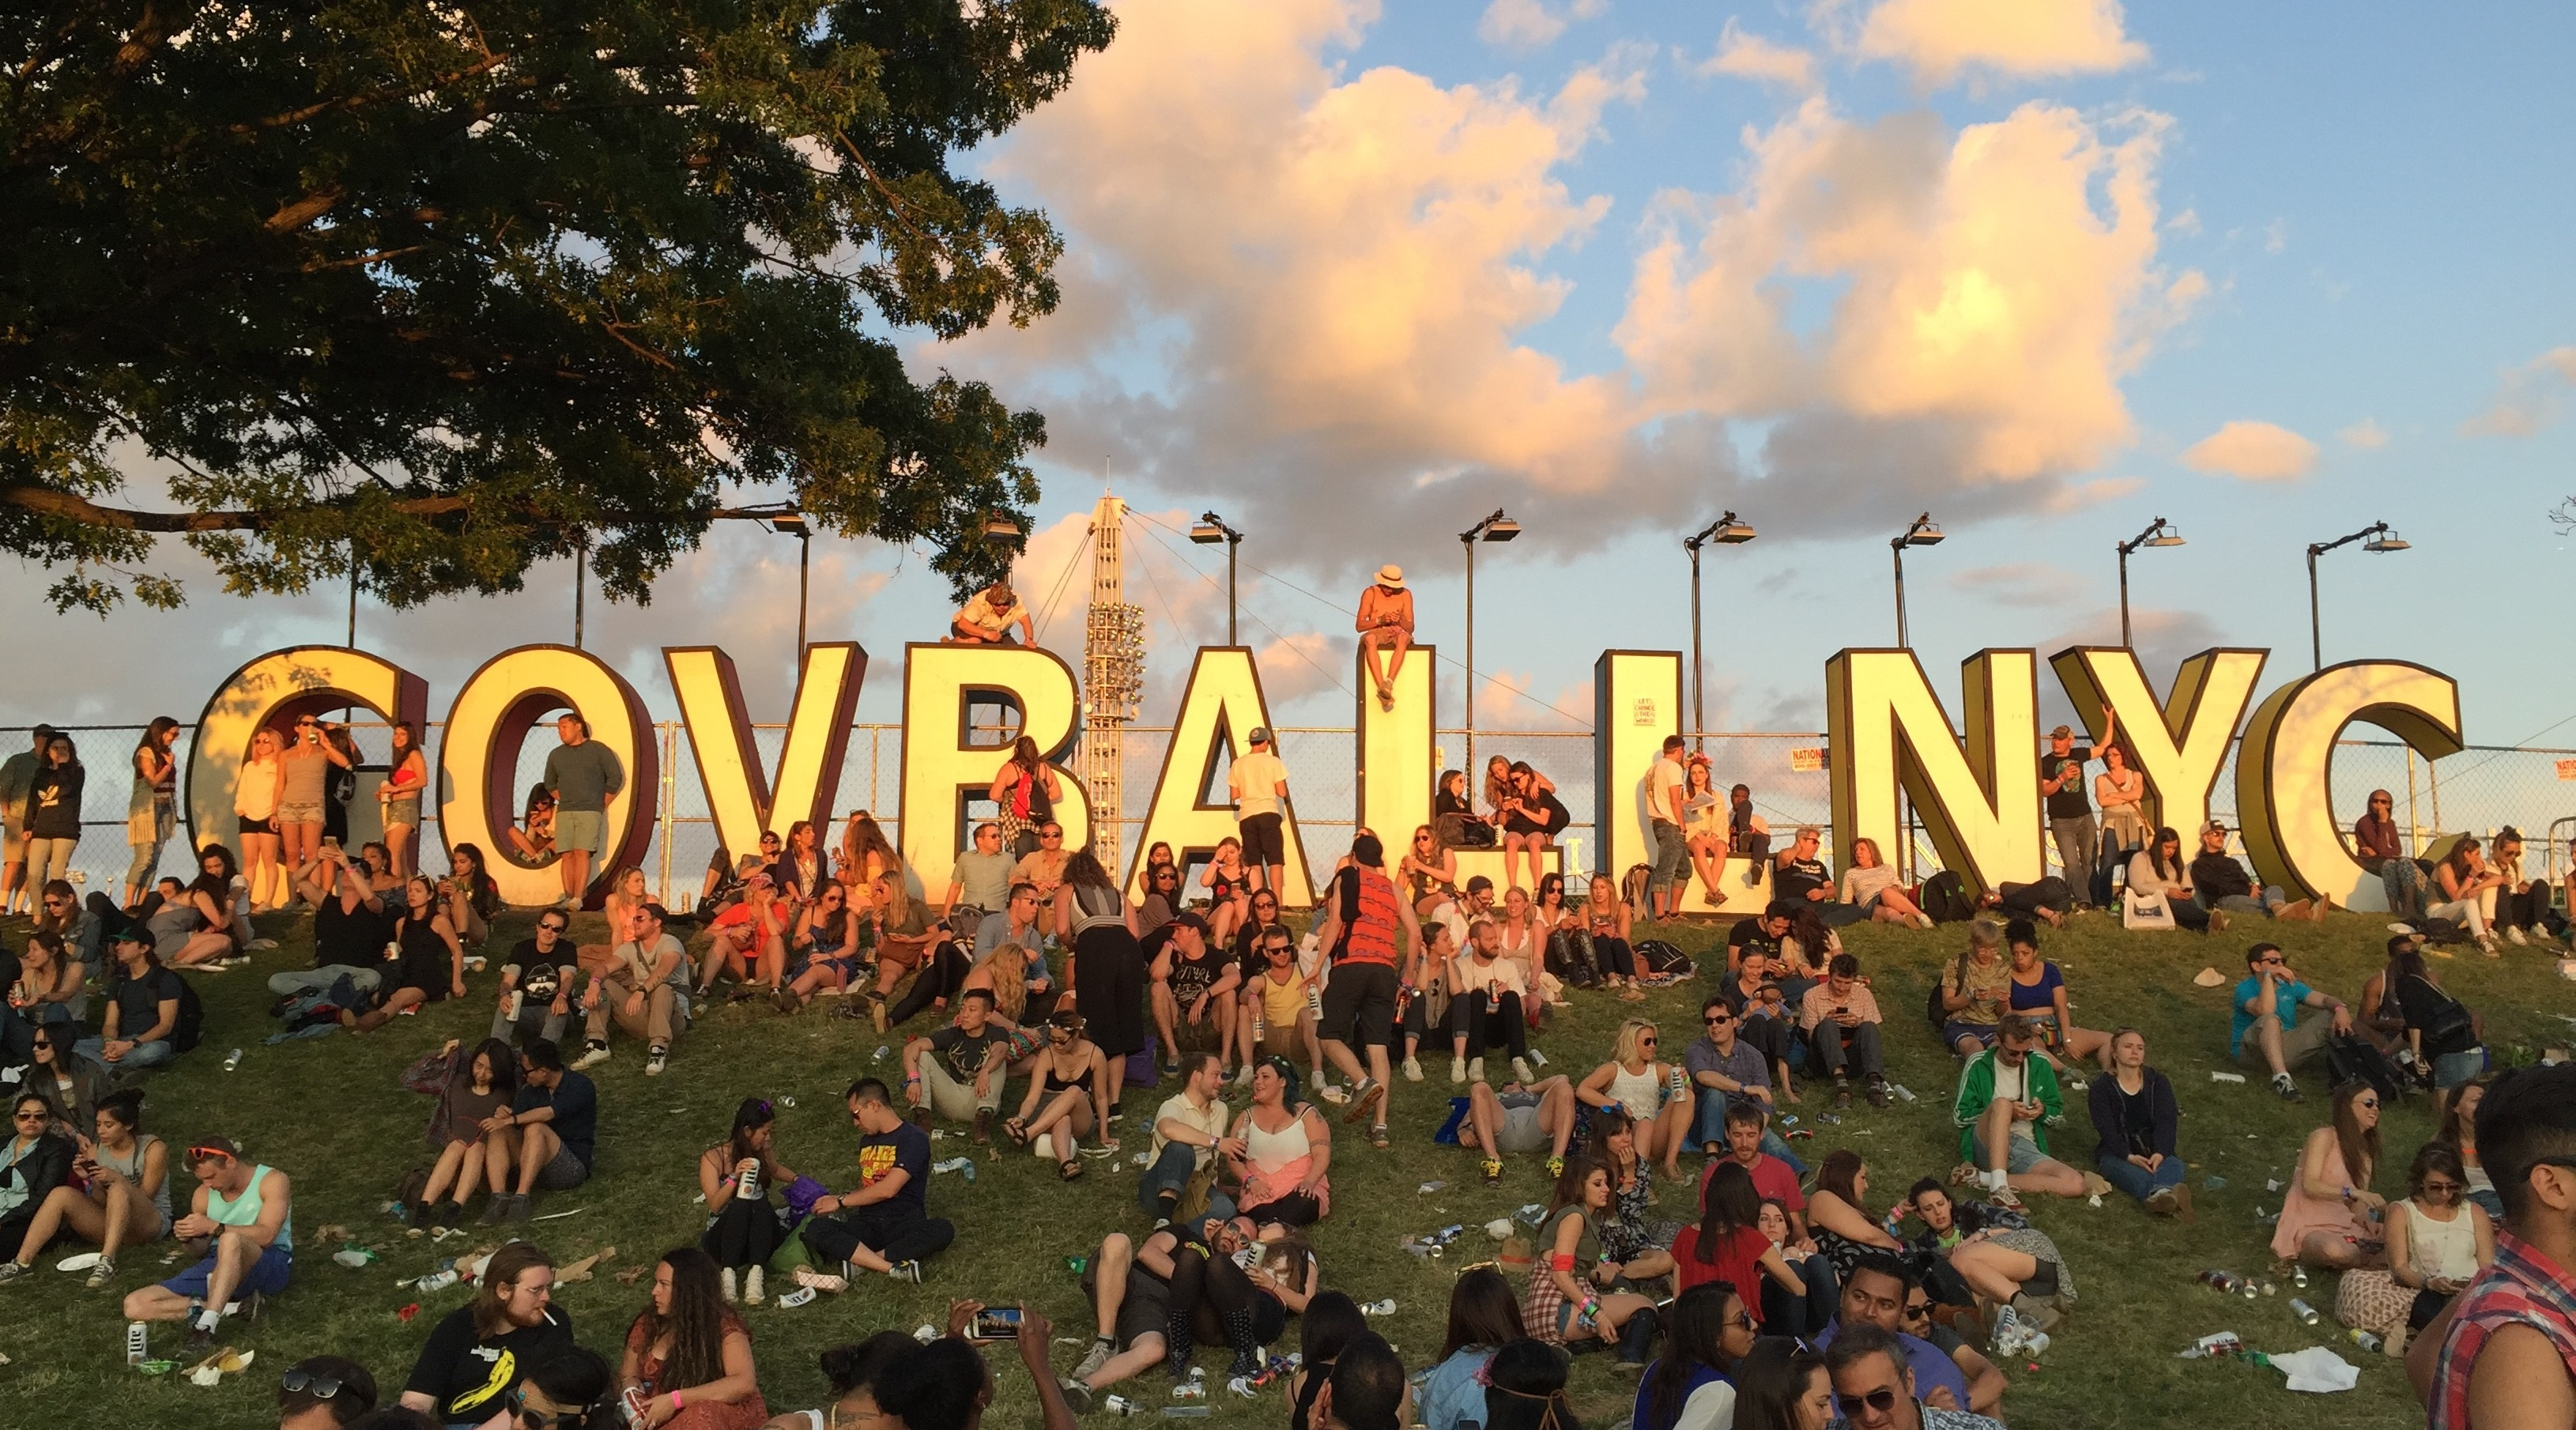 Corporate Social Responsibility Initiatives Give Governors Ball Musical Festival a Competitive Edge in NYC